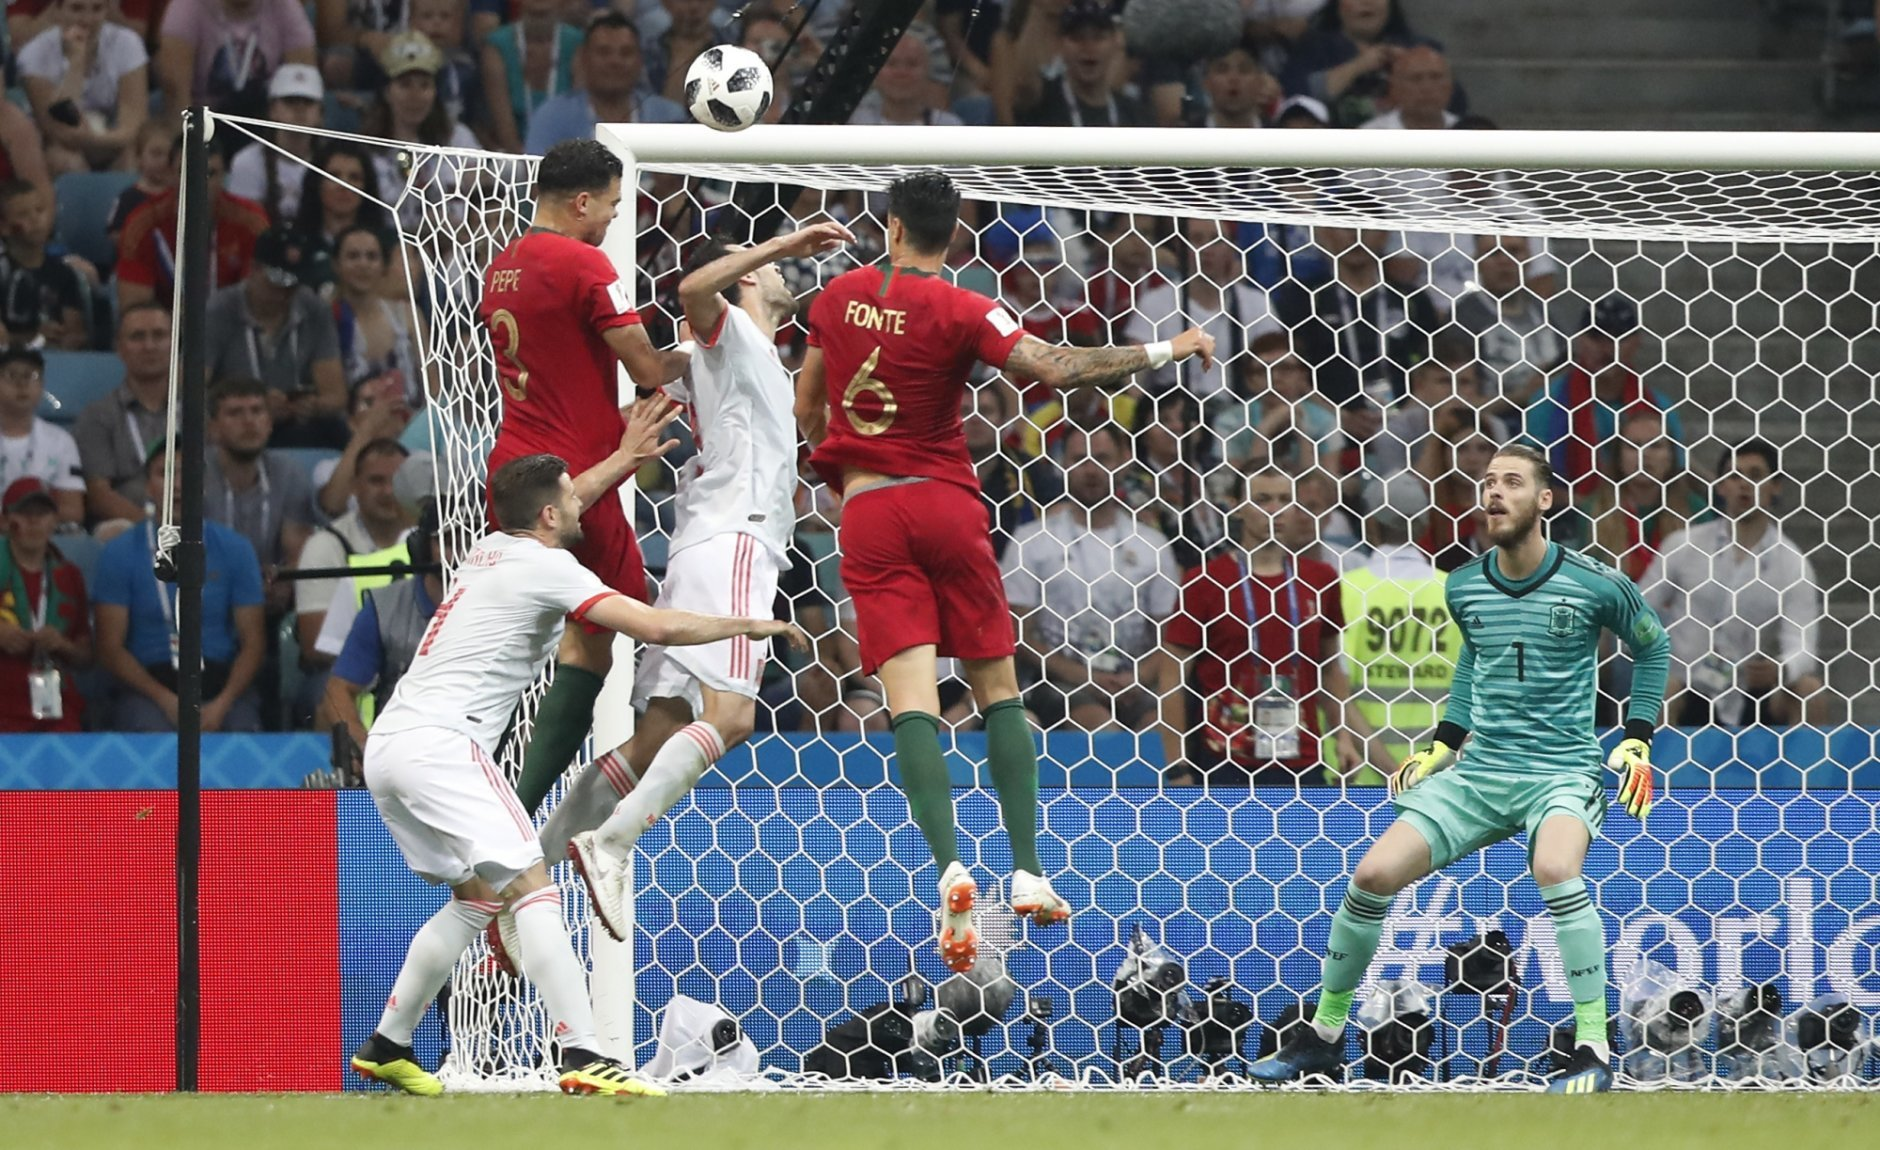 Portugal's Pepe and Portugal's Jose Fonte challenge for the ball in front of Spain goalkeeper David De Gea during the group B match between Portugal and Spain at the 2018 soccer World Cup in the Fisht Stadium in Sochi, Russia, Friday, June 15, 2018. (AP Photo/Frank Augstein)